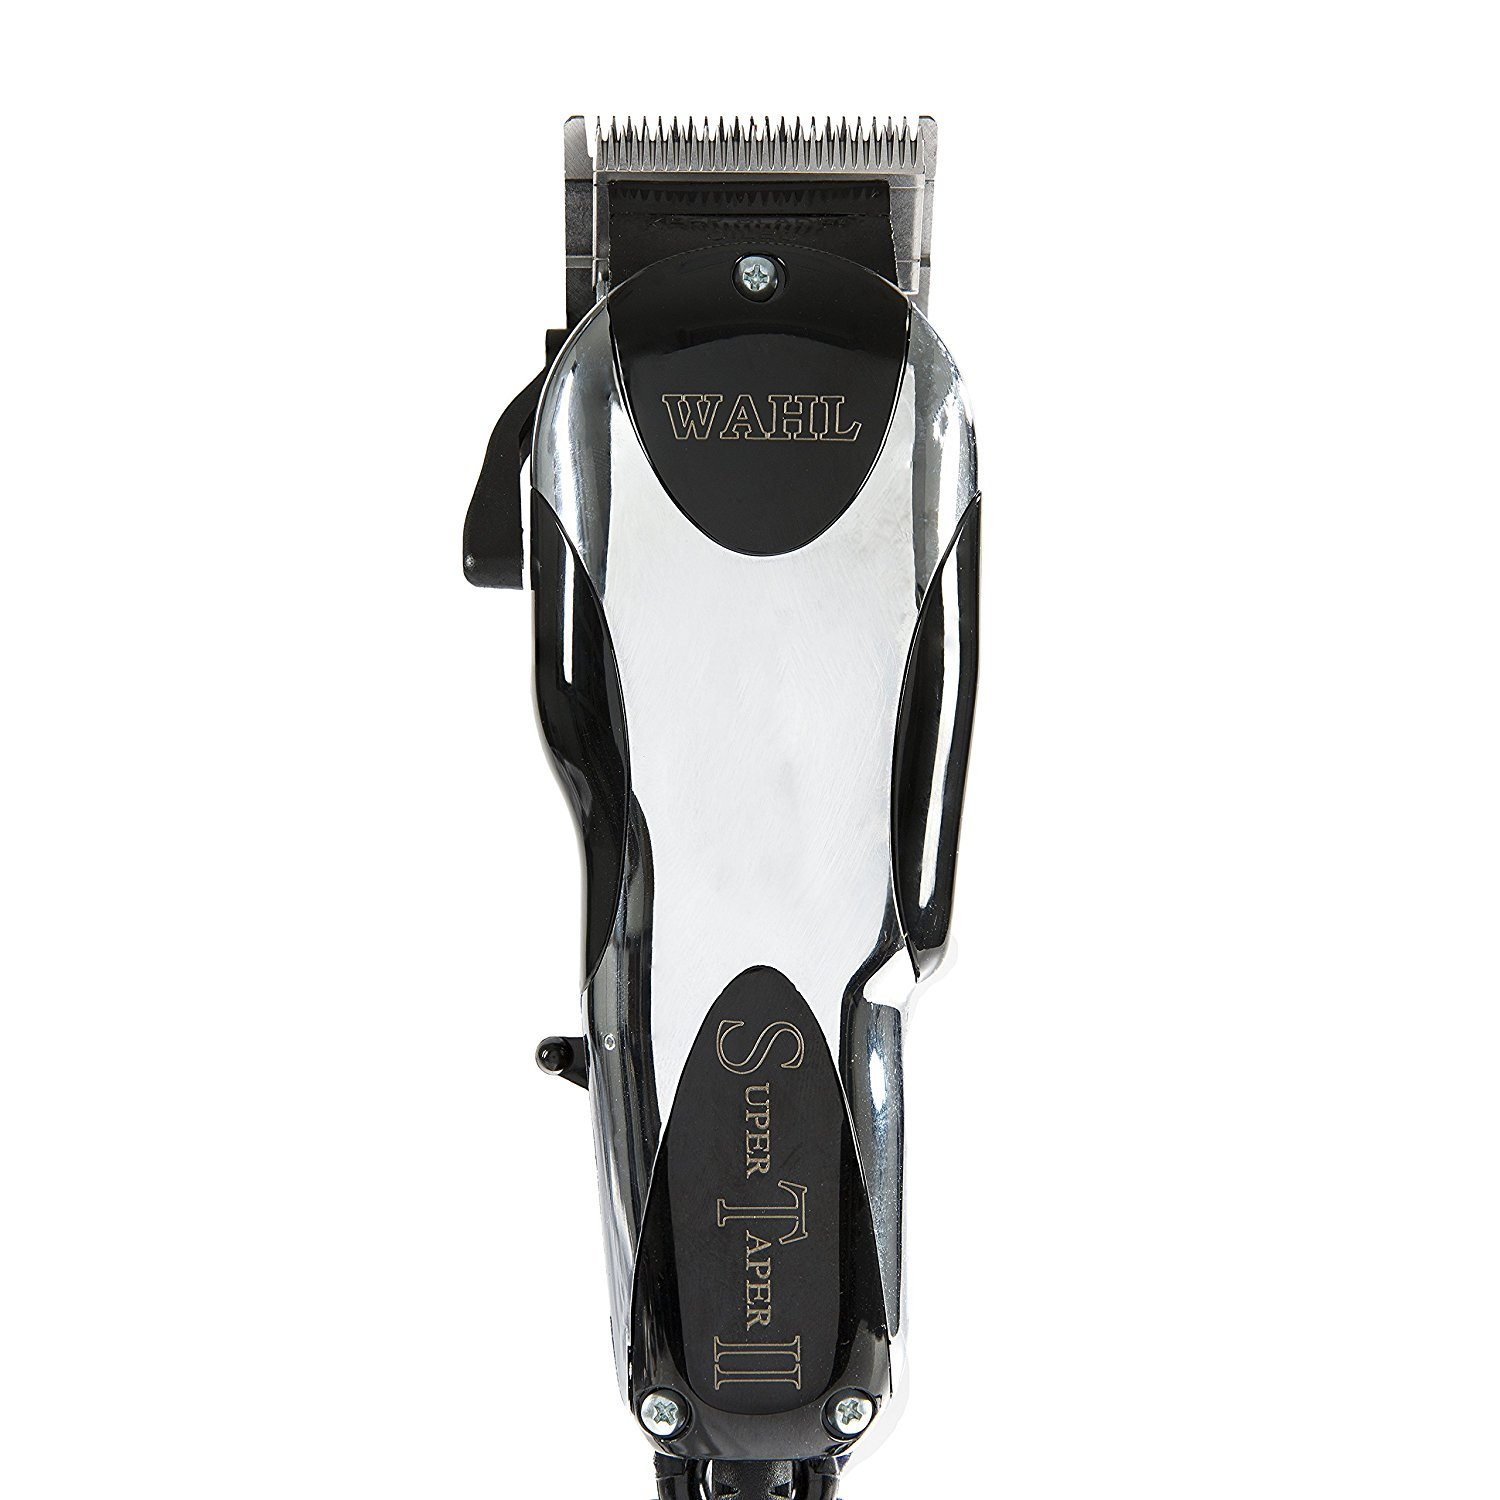 #6 - Wahl Professional Super Taper II Hair Clipper #8470-500 – Ultra-Powerful Full Size Clipper